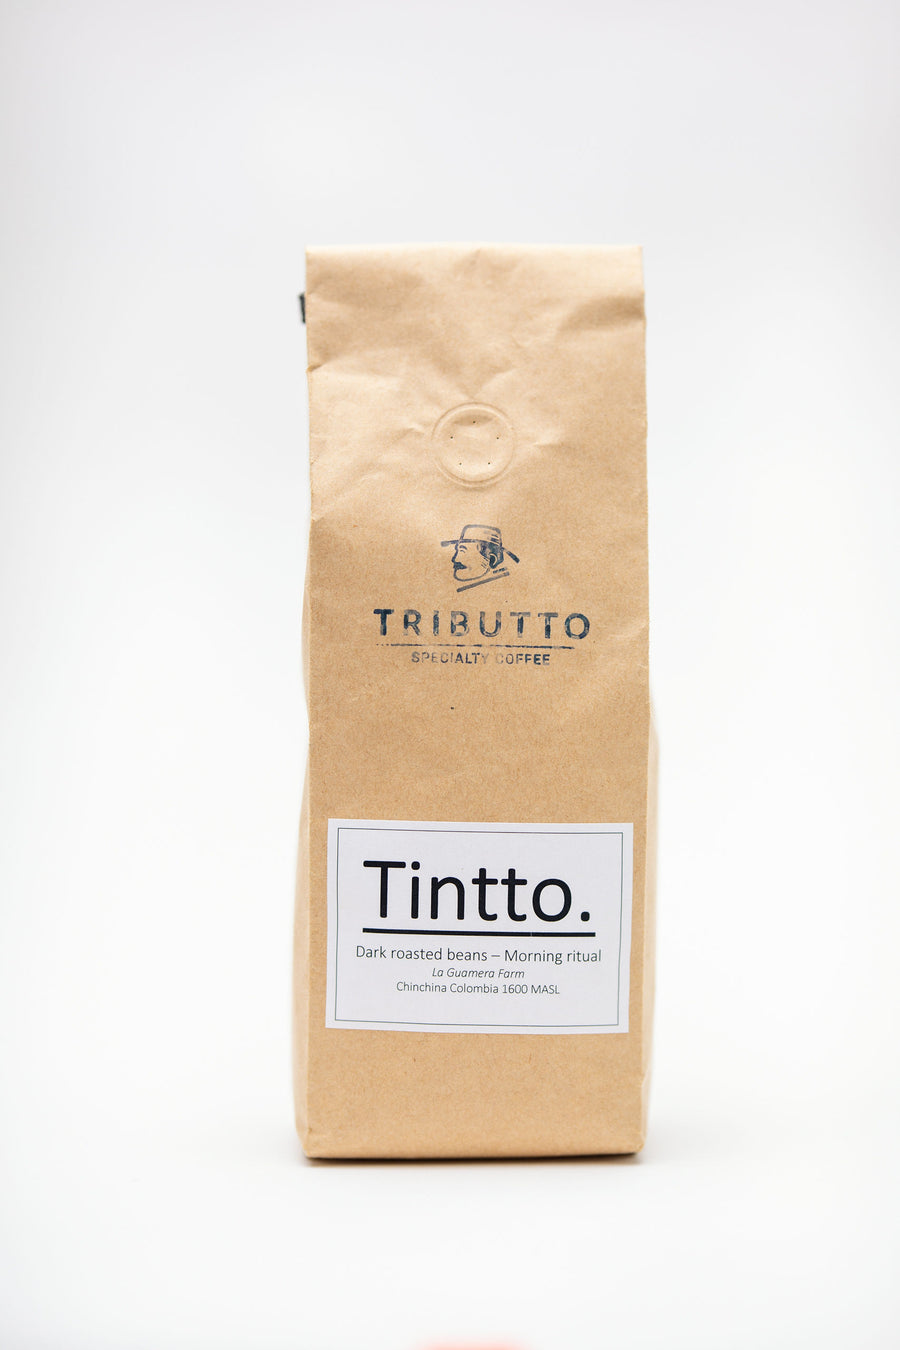 RIBUTTO SPECIALTY COFFEE |TINTTO - fully washed